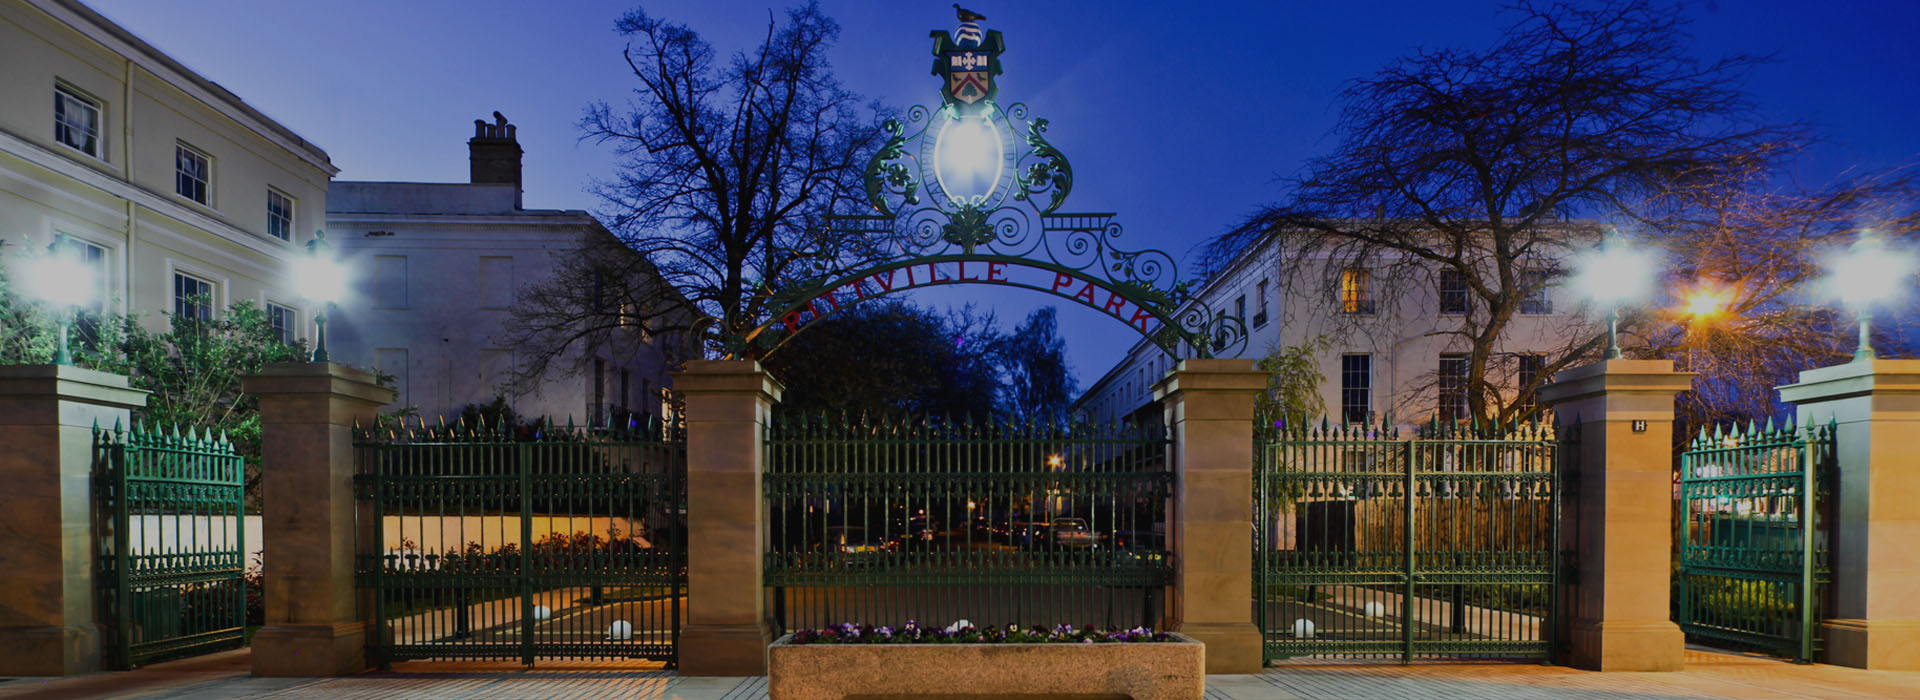 Pittville Gates, award-winning, restoration, heritage project